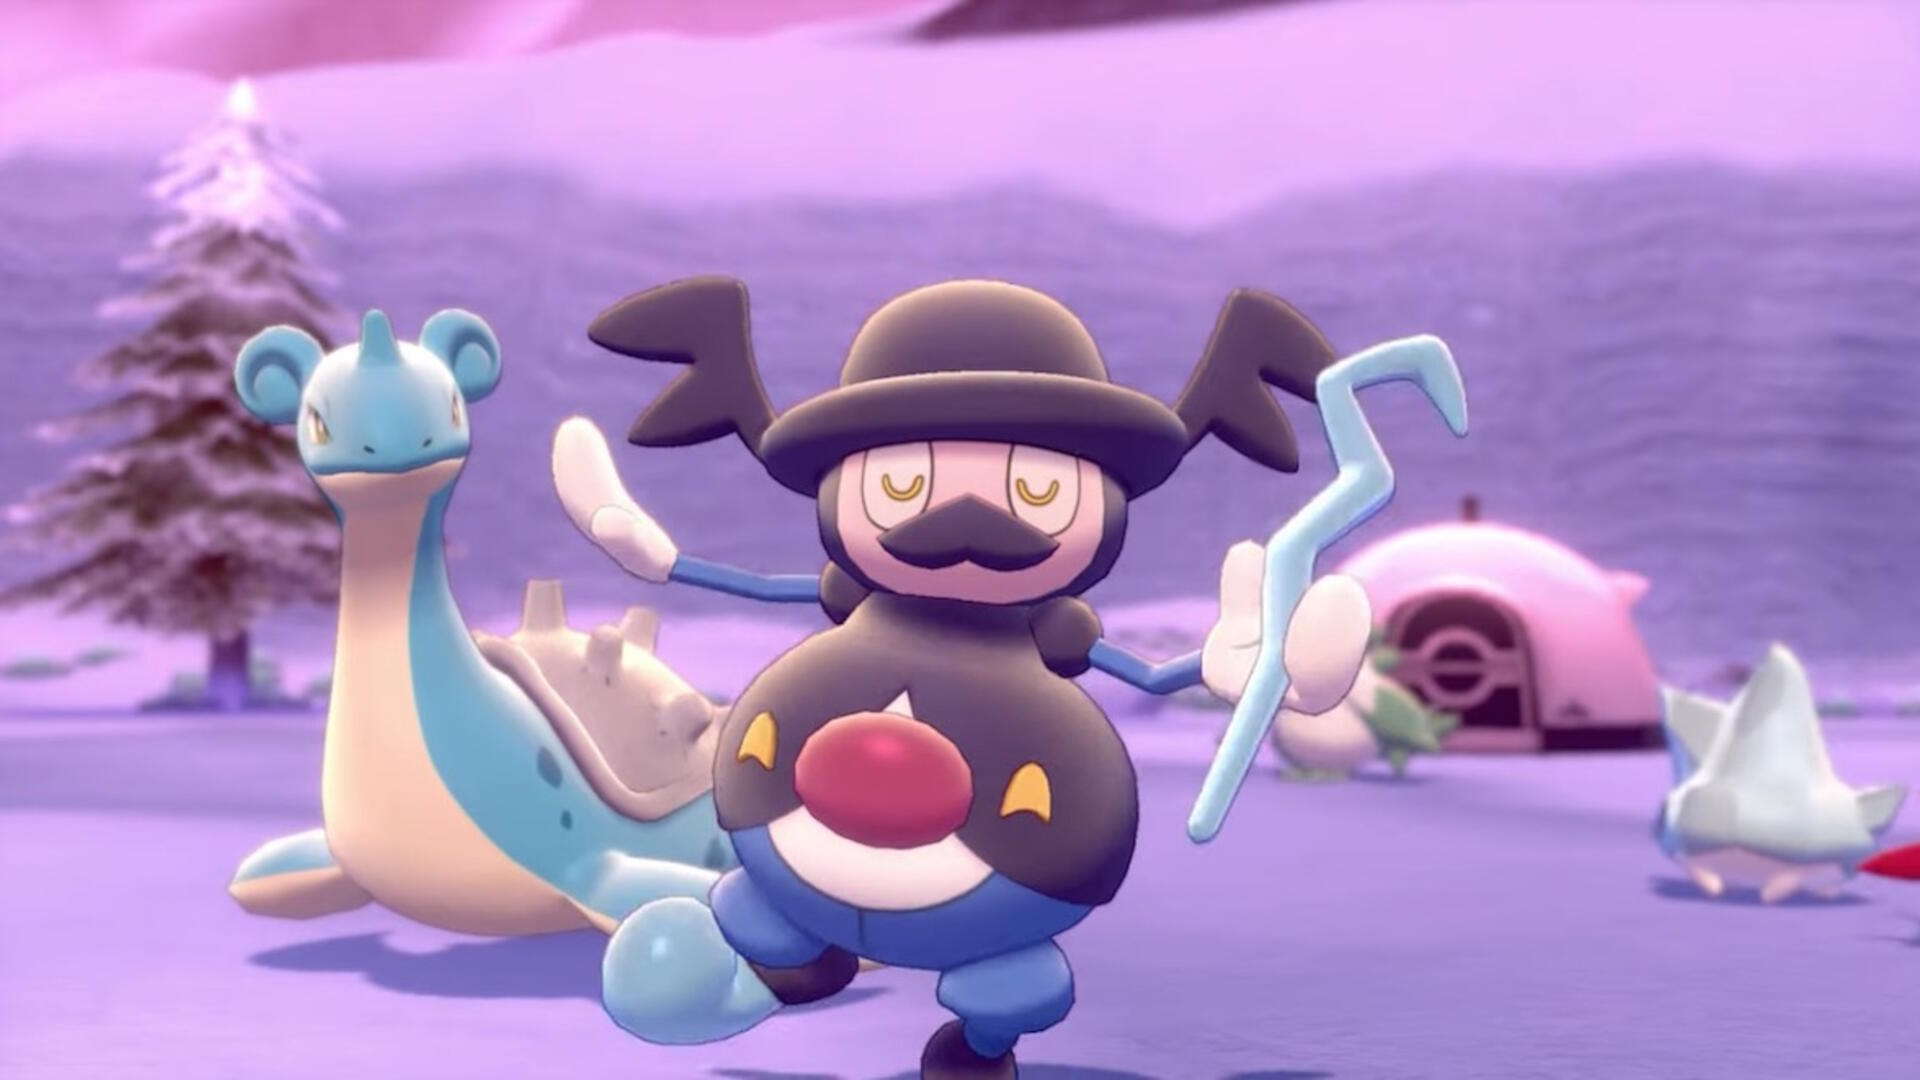 Pokemon Sword and Shield Mr. Mime - How to Get Kanto Mr. Mime and Mr. Rime